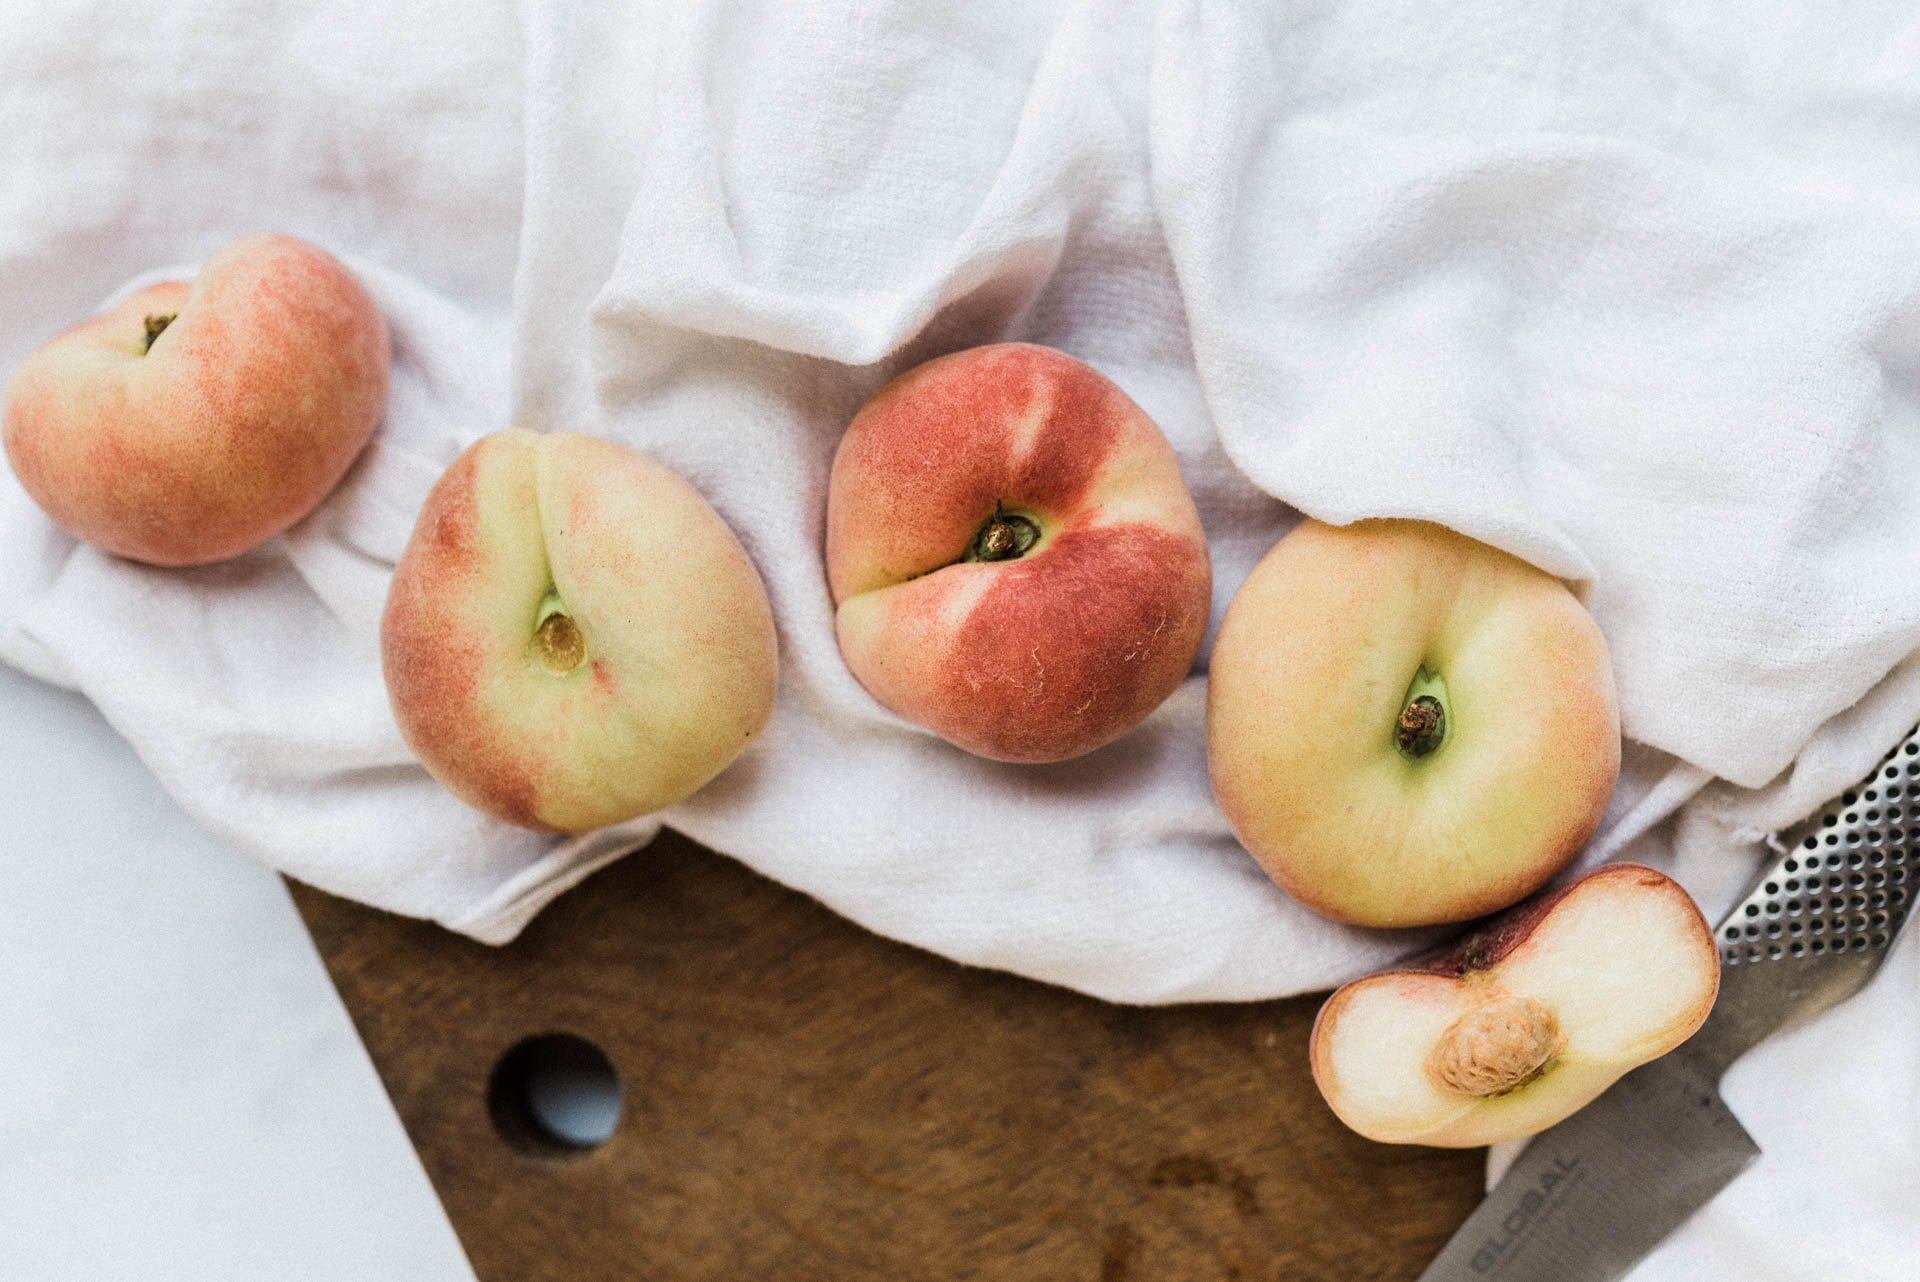 flat peaches on linen, food photography